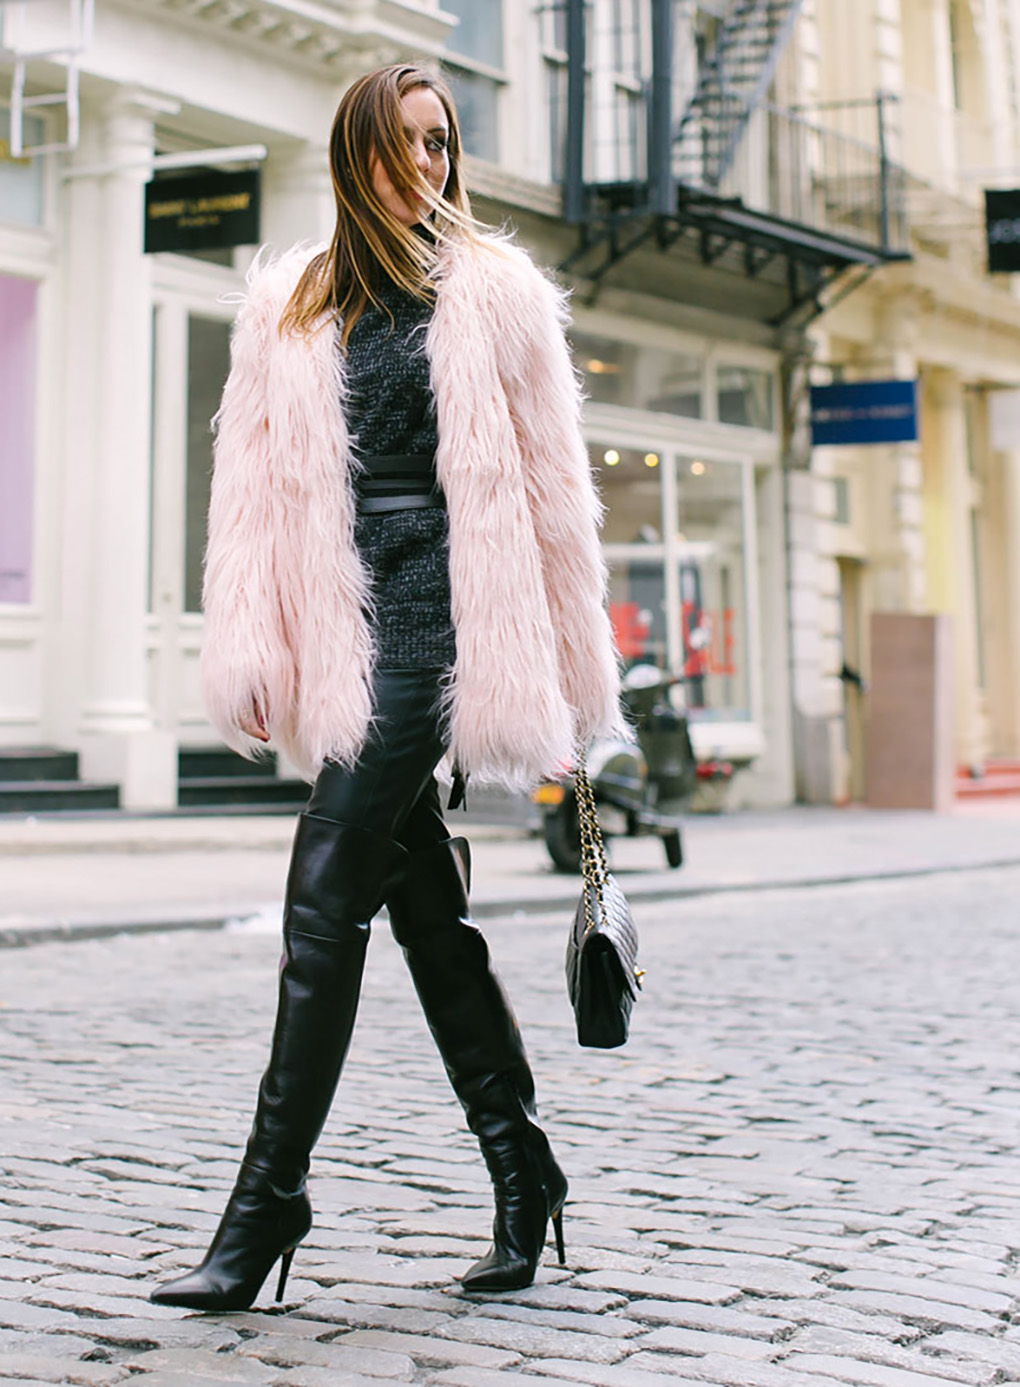 sydne-style-shows-how-to-wear-the-faux-fur-trend-with-a-tarte-pink-fuzzy-coat